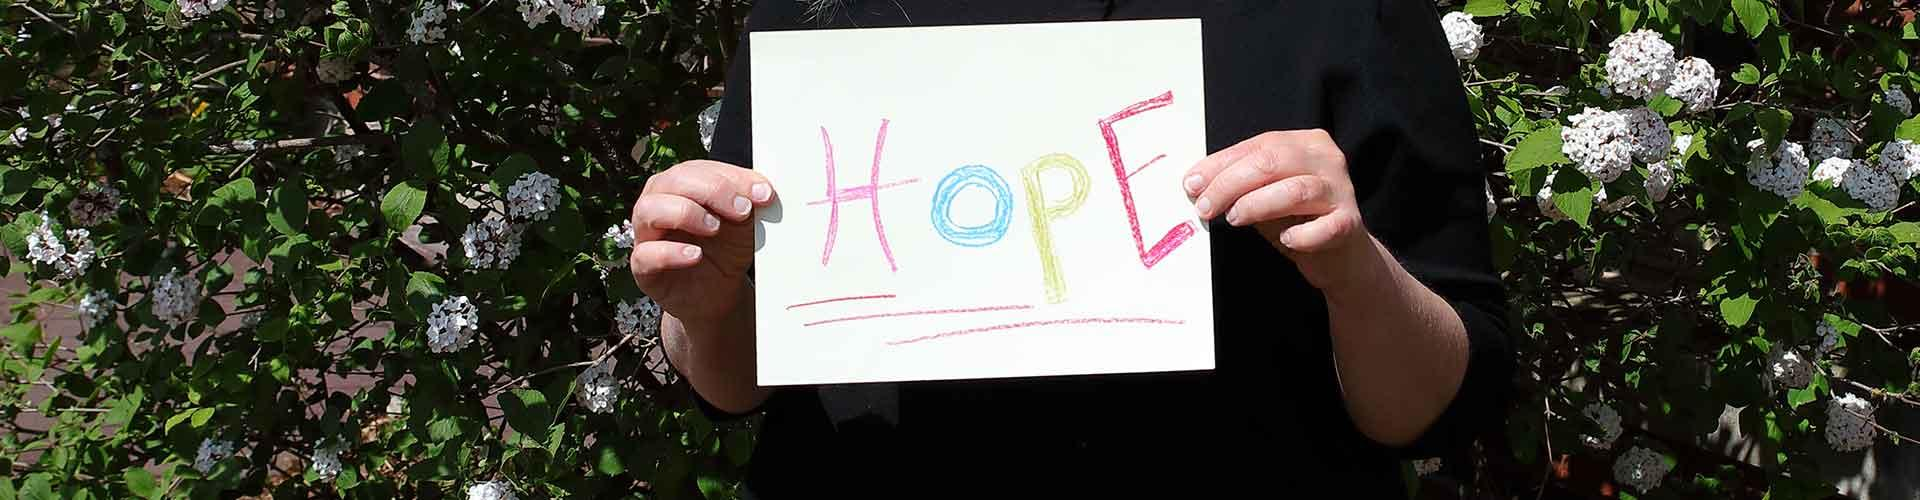 Hands holding up sign with handwritten Hope